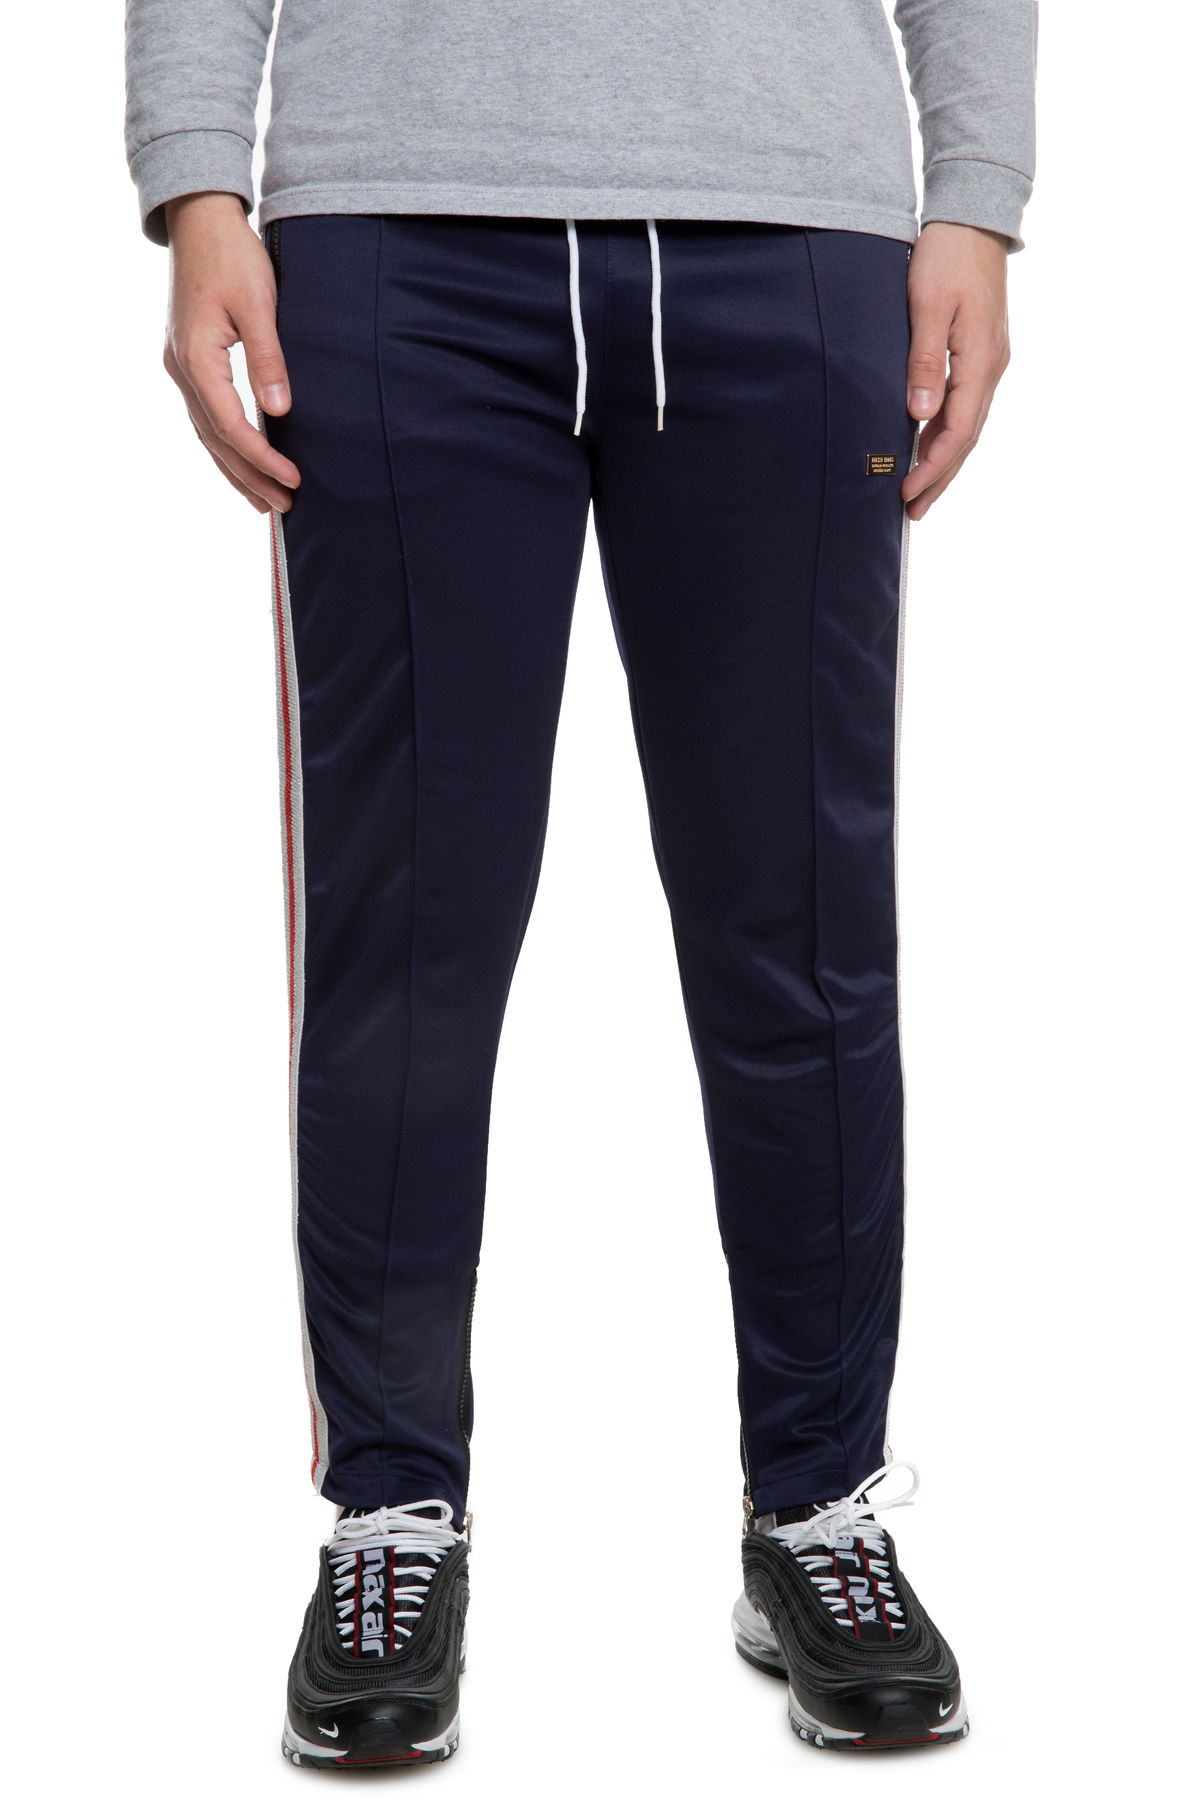 Image of The Ludlow Track Pants in Blue